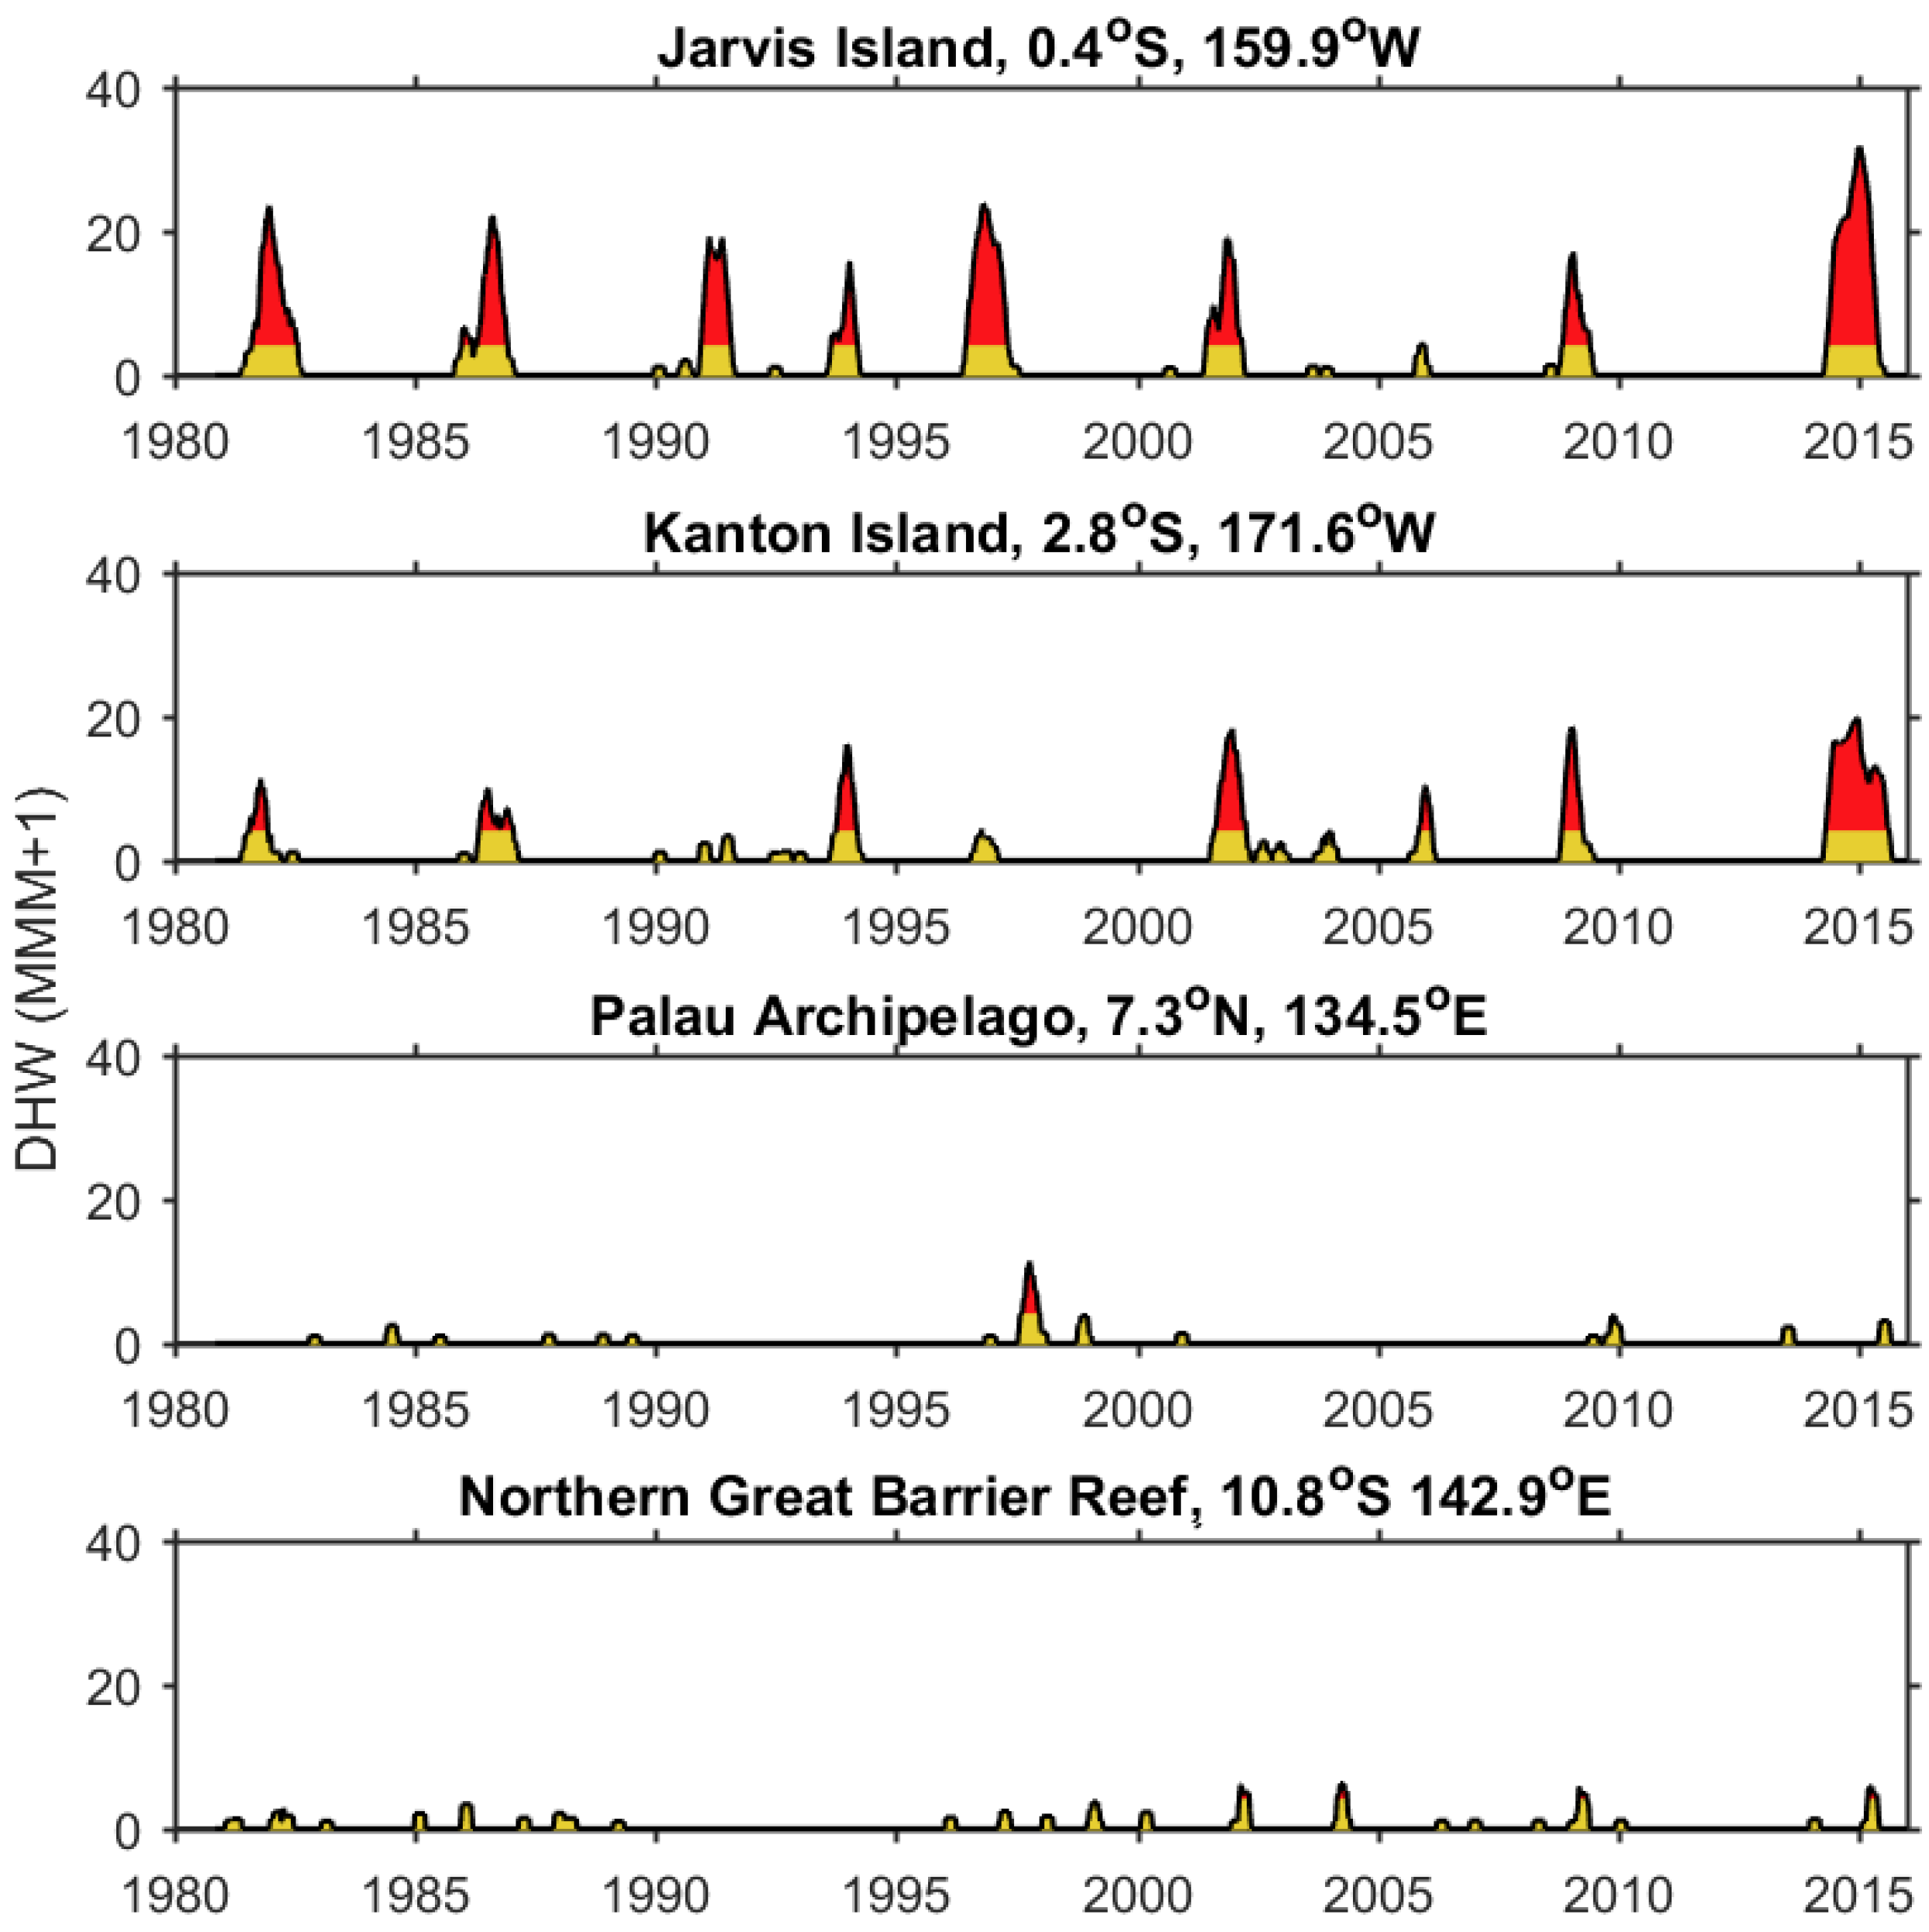 A comparison of levels of thermal stress, represented by degree heating weeks (DHW) experienced by corals in the central Pacific (Jarvis Island in the Pacific Remote Islands Marine National Monument (PRIMNM) and Kanton Island in PIPA) to that in the western Pacific (Palau and Great Barrier Reef) over the last 35 years